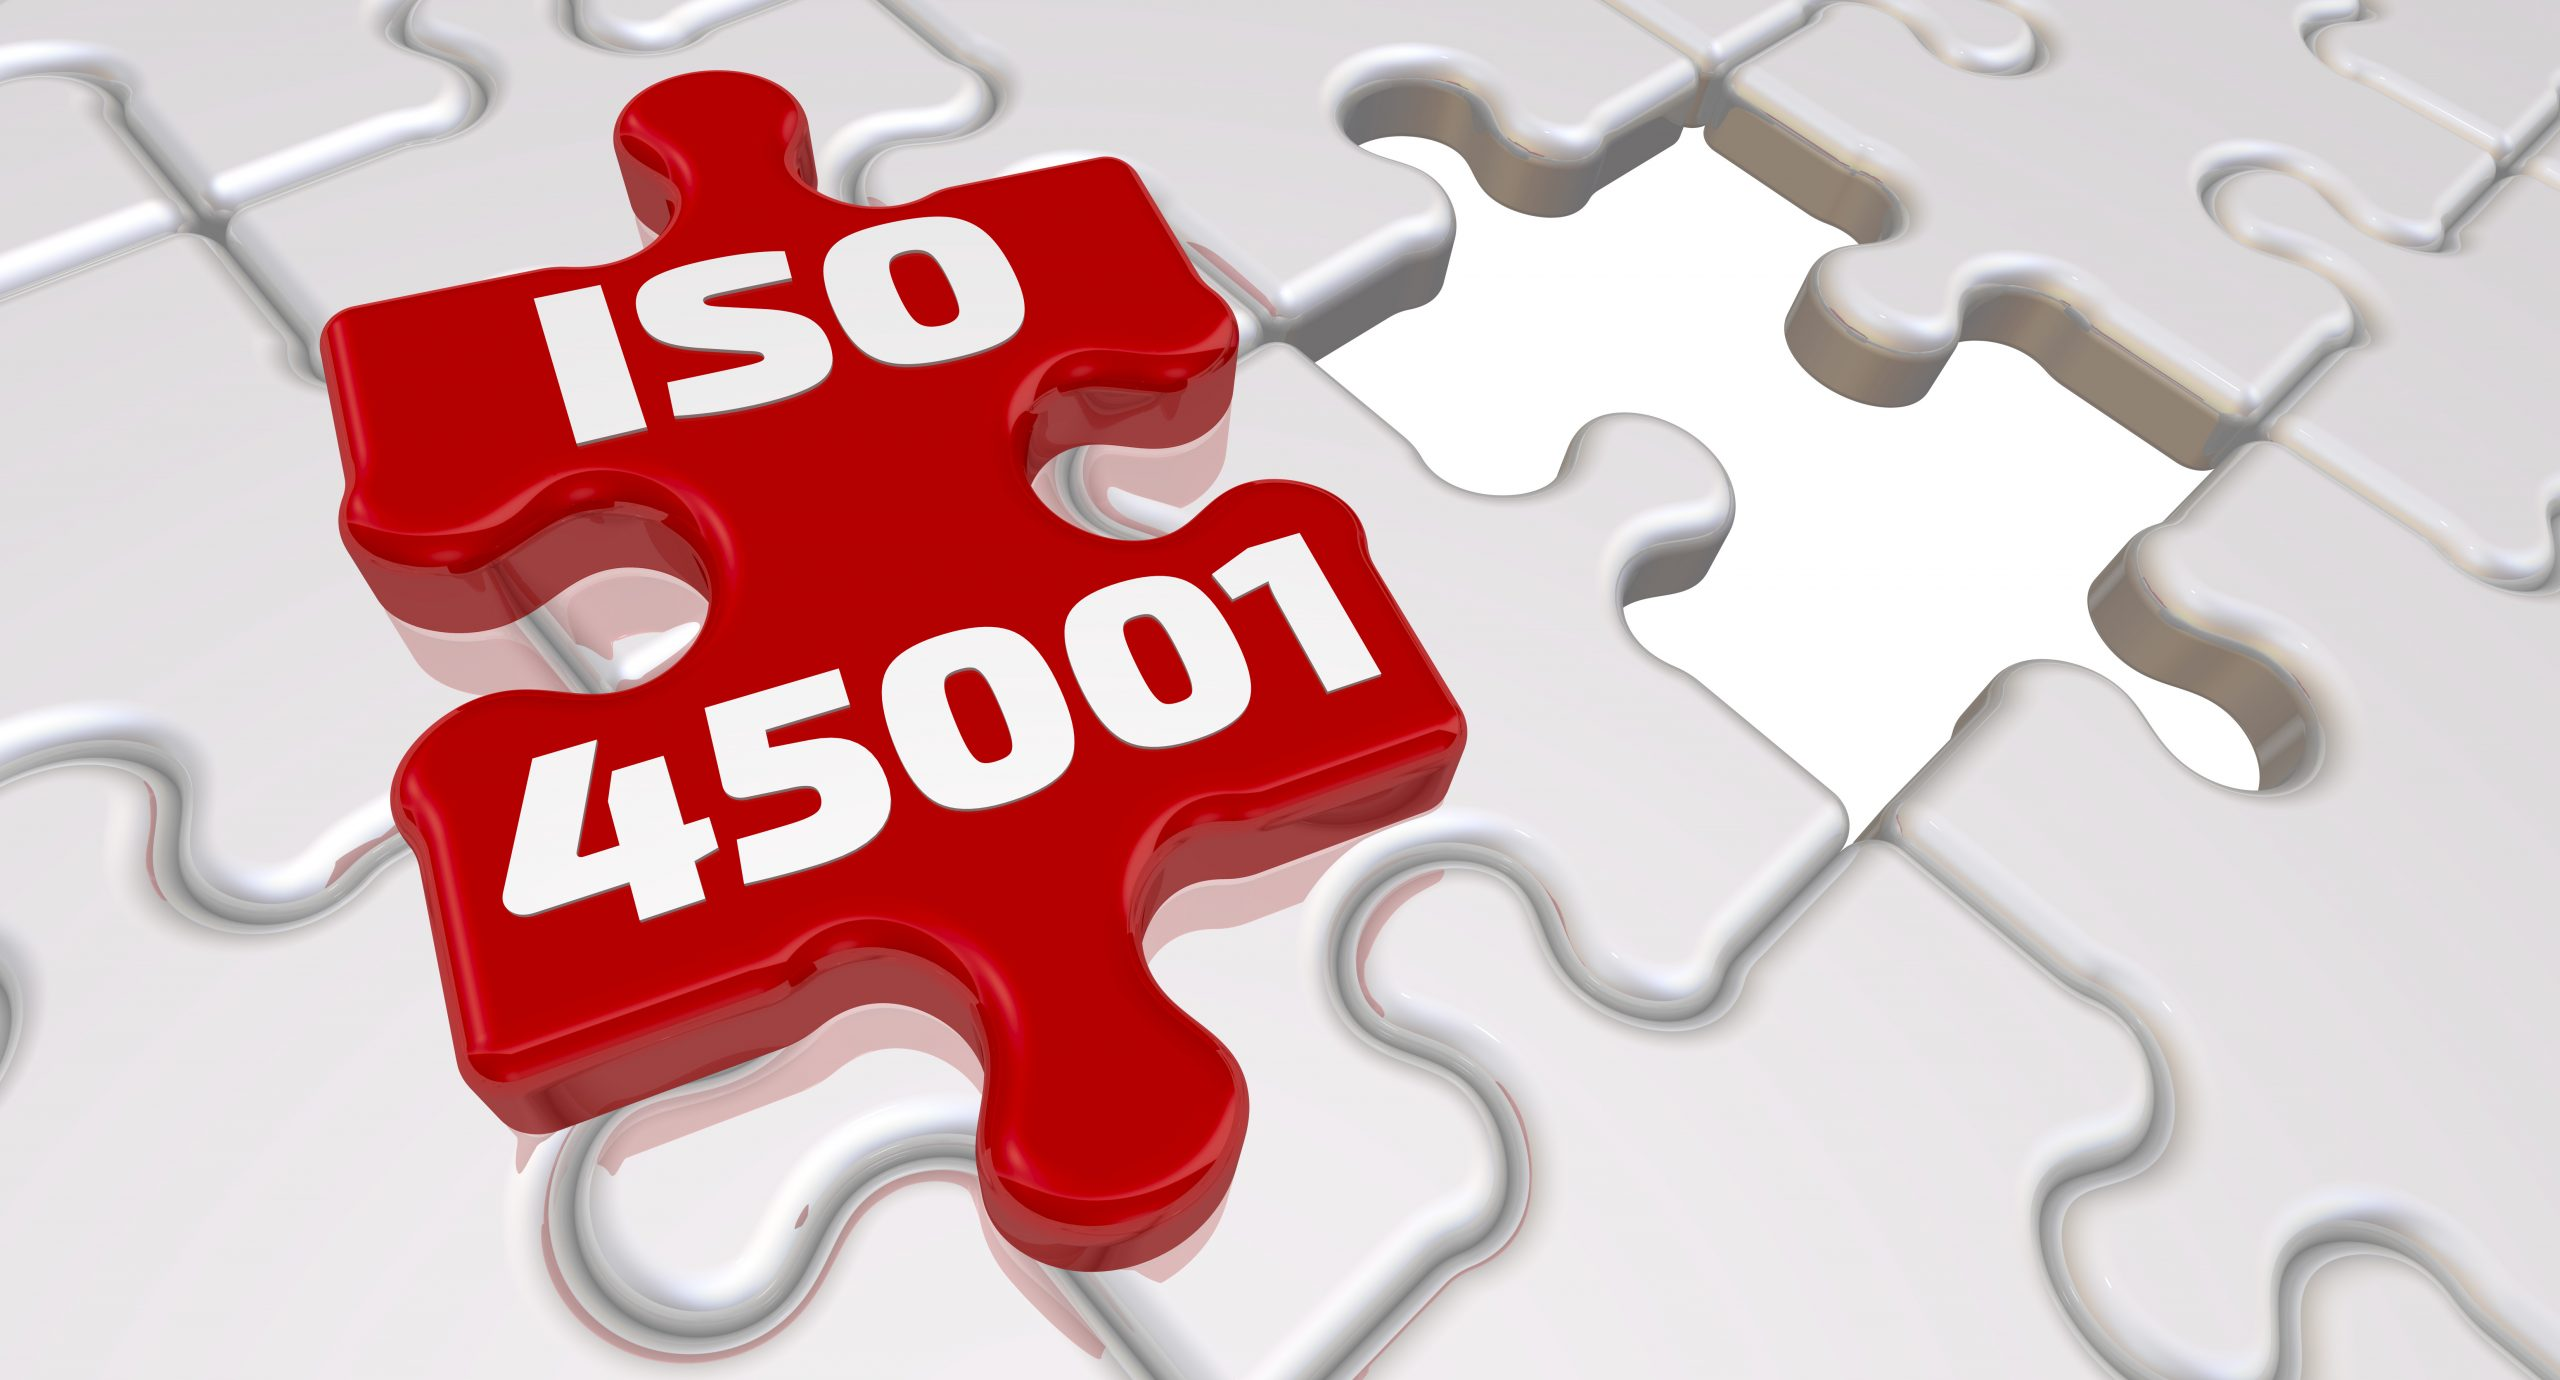 ISO 45001 scaled